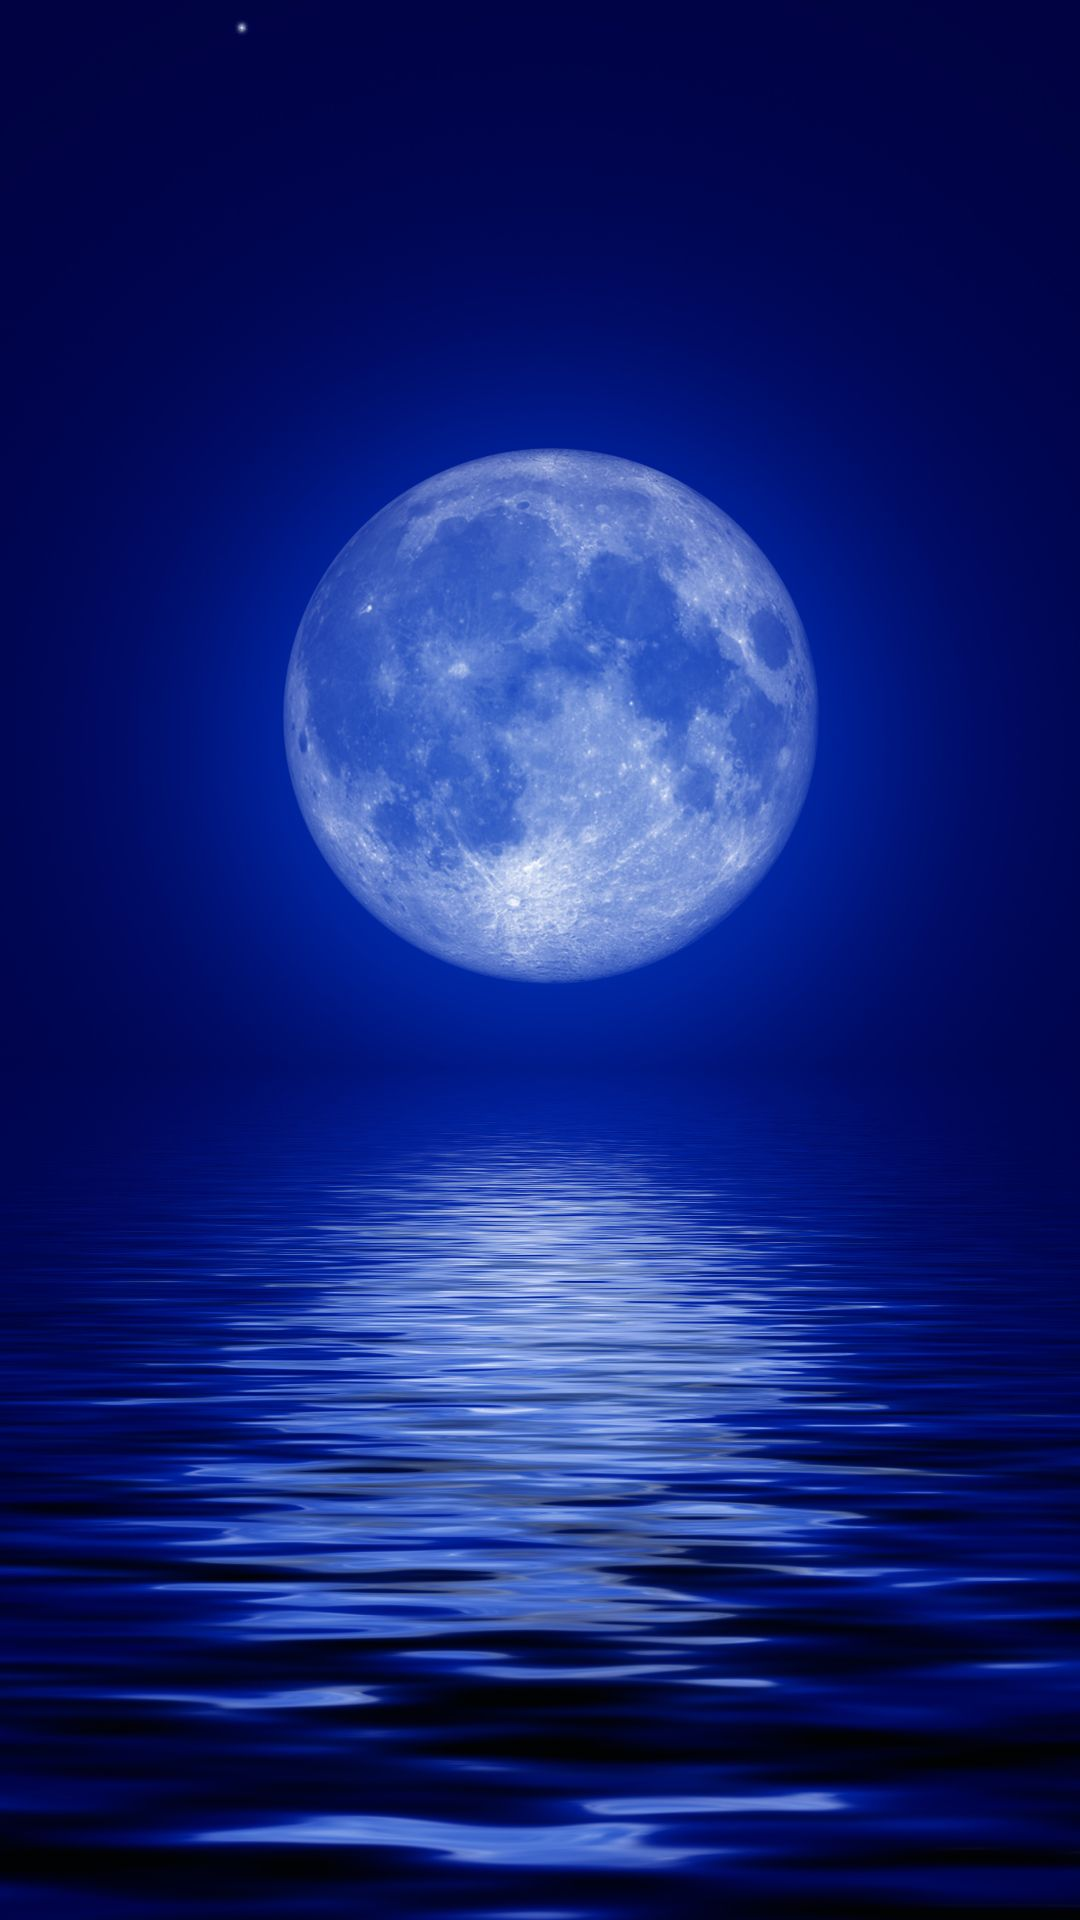 Full Moon Wallpaper For Mobile | Wallpaper | Pinterest | Moon, Beautiful moon and Full moon